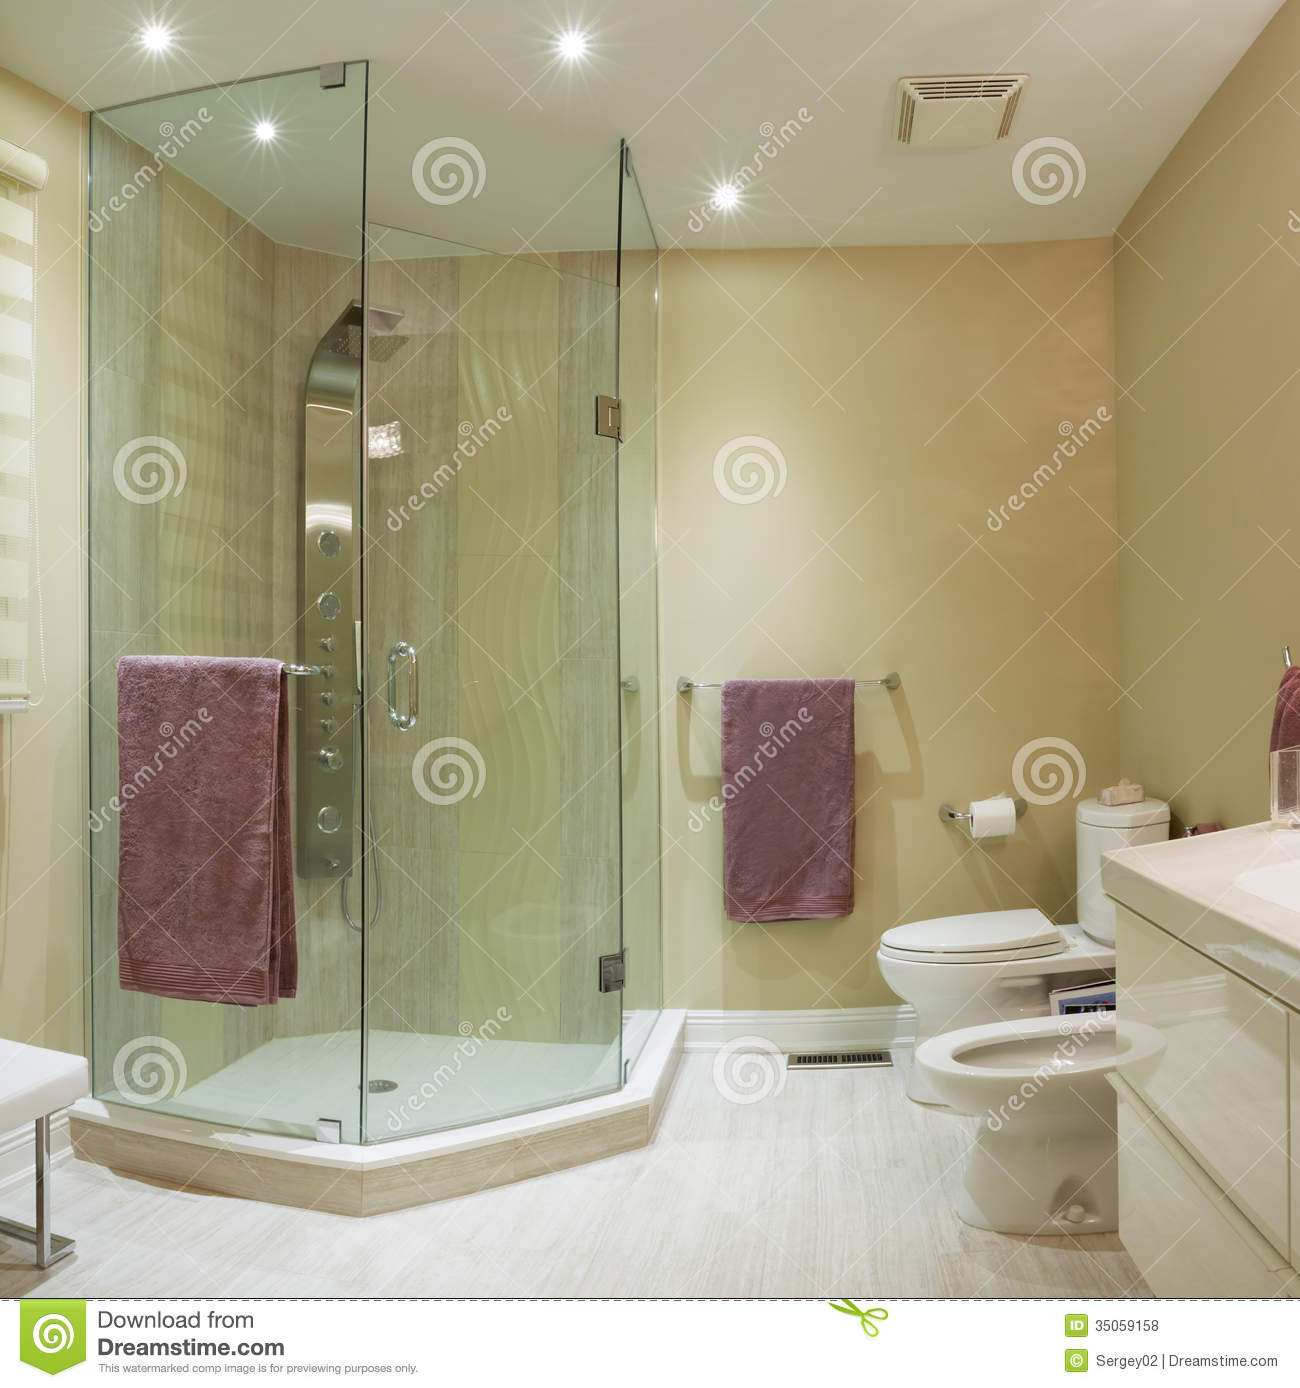 Interior design royalty free stock photos image 35059158 for Home restroom design